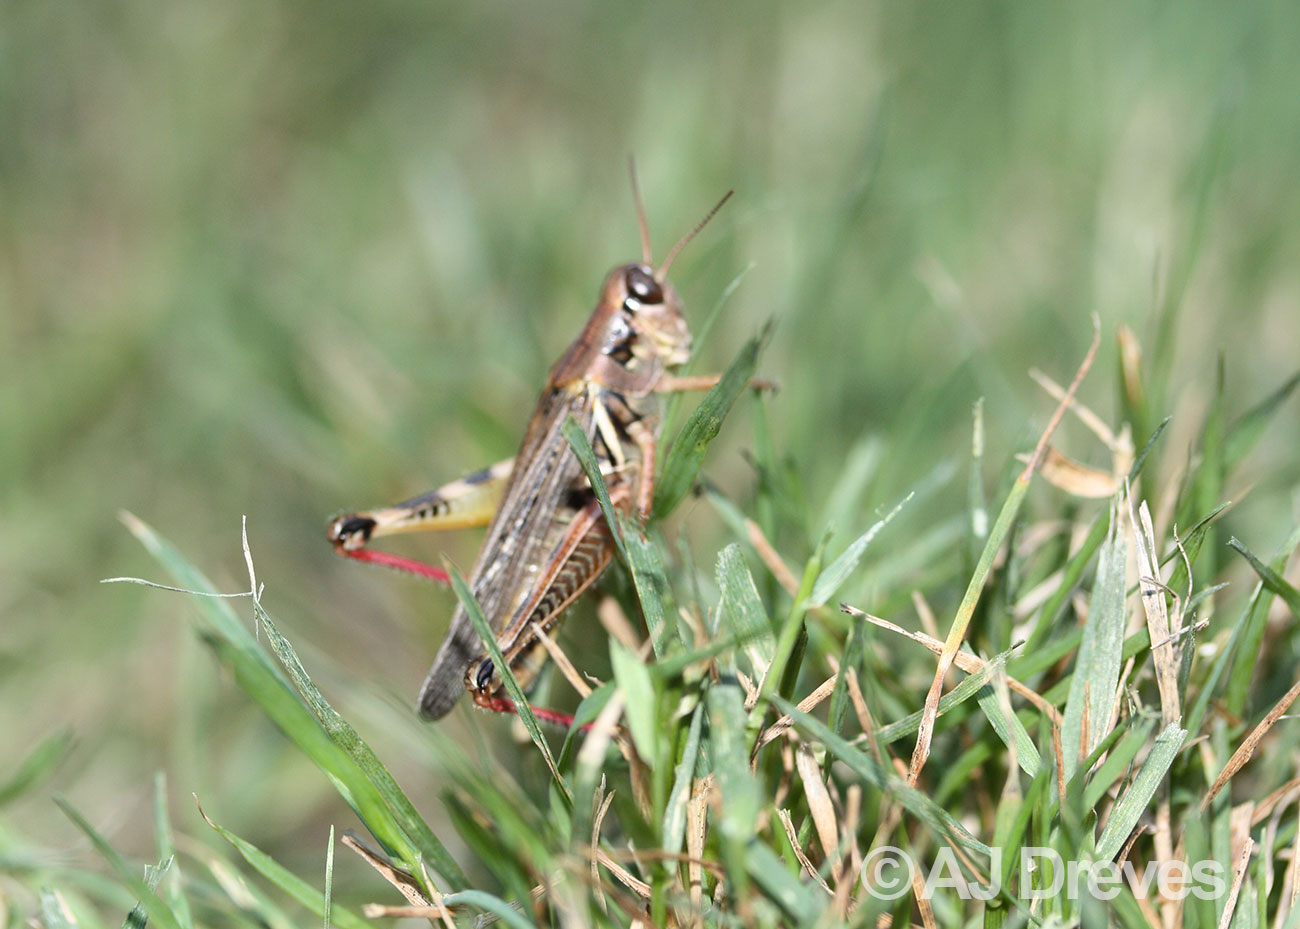 Red legged grasshopper in grass